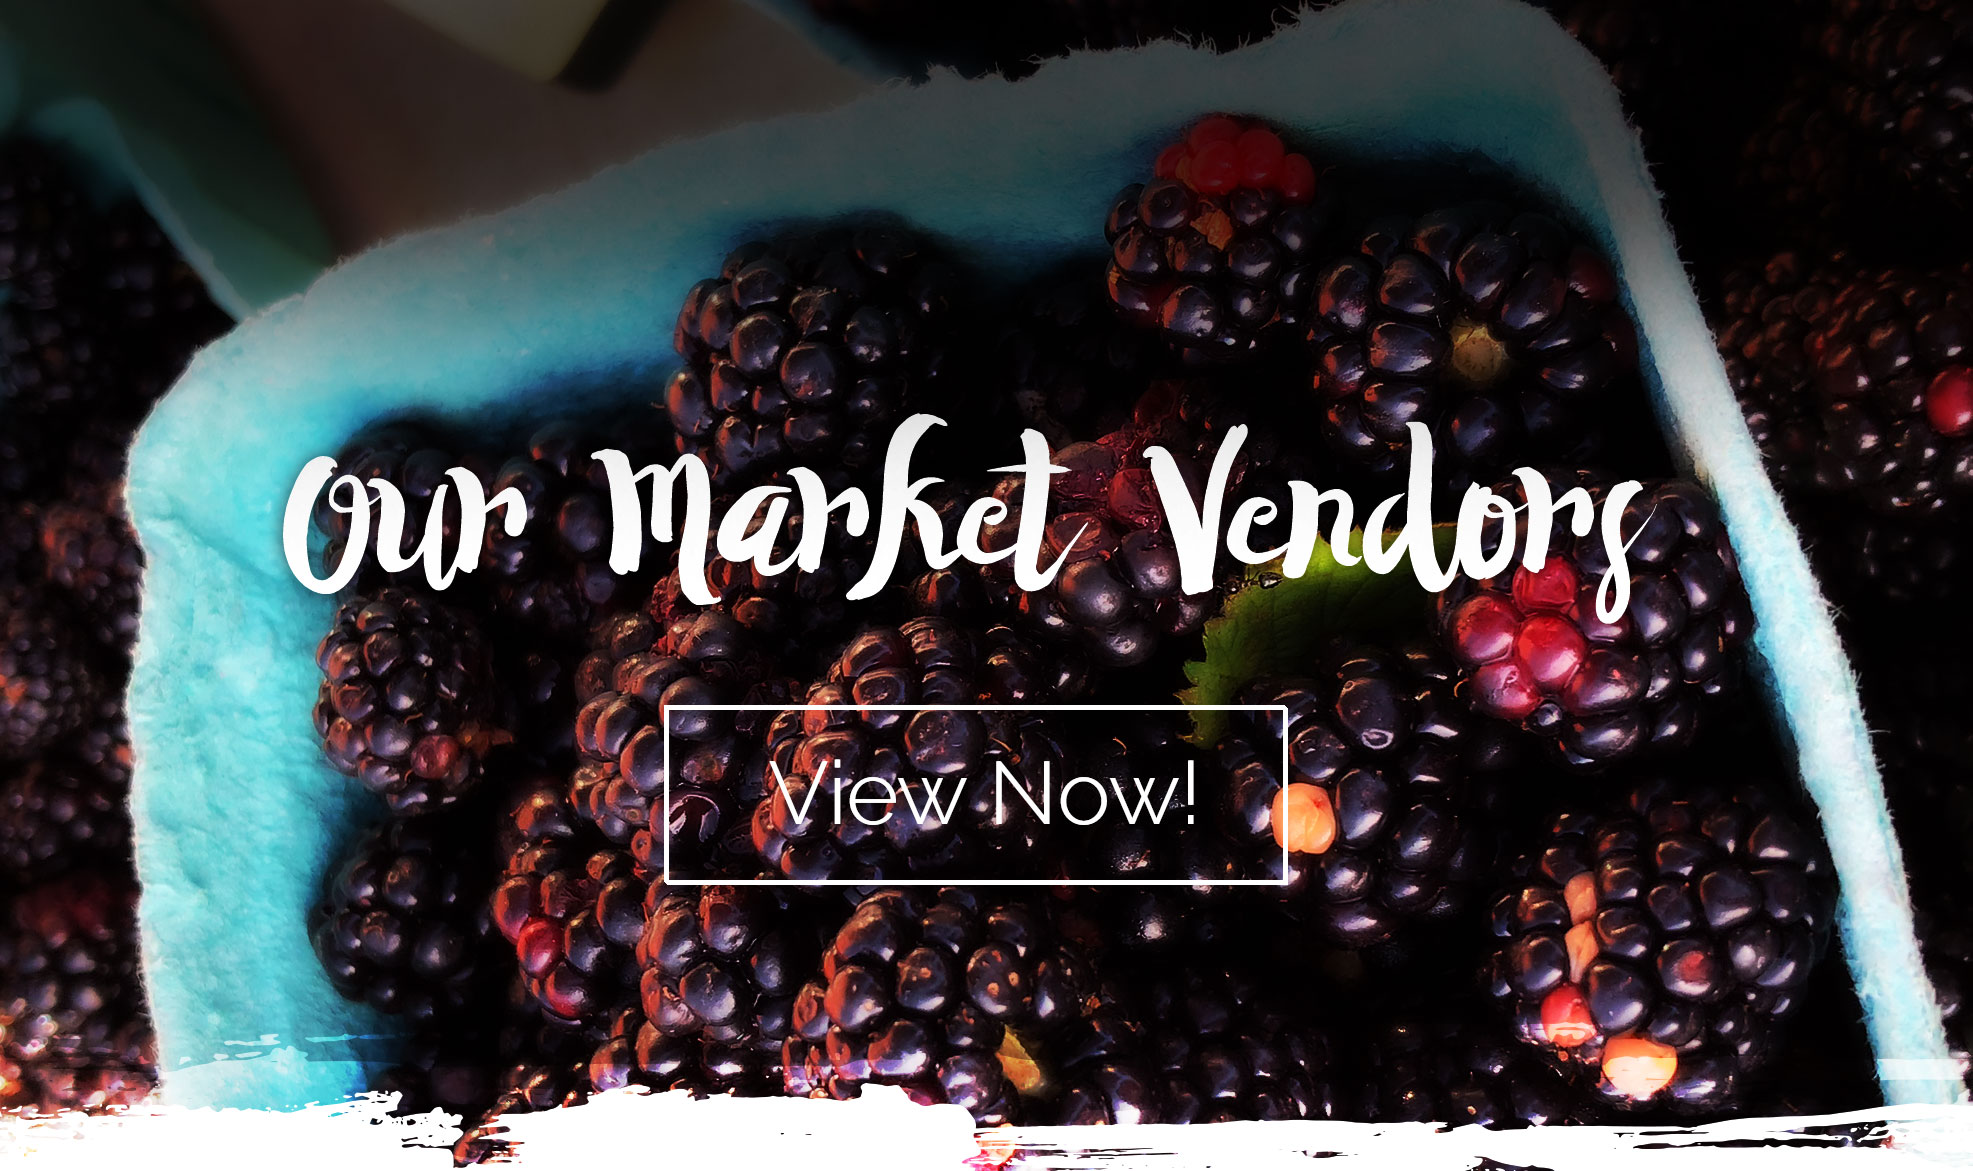 Our Market Vendors